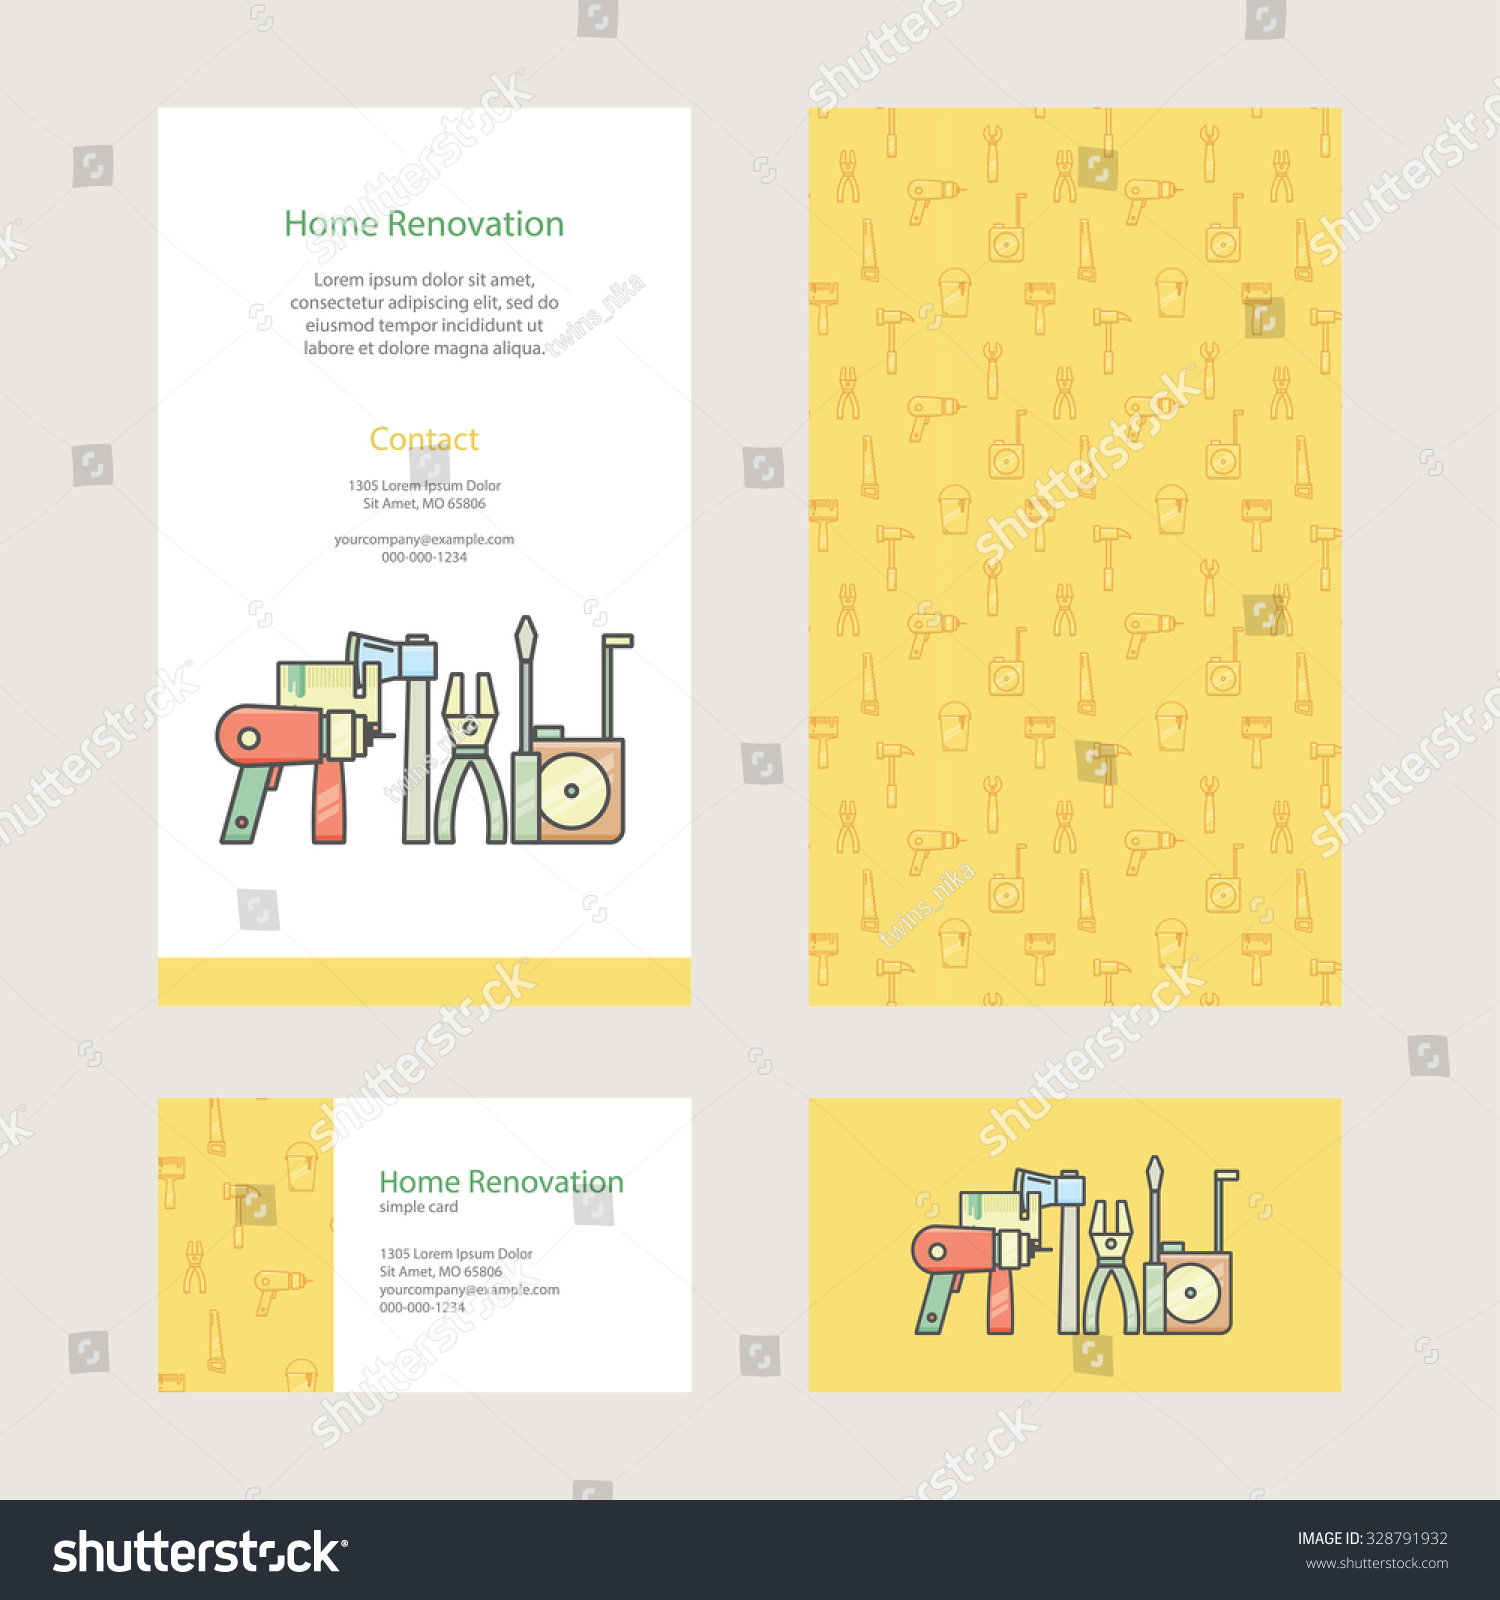 Home repair business cards images free business cards home repair business cards image collections free business cards home repair brochure and business cms templates magicingreecefo Gallery